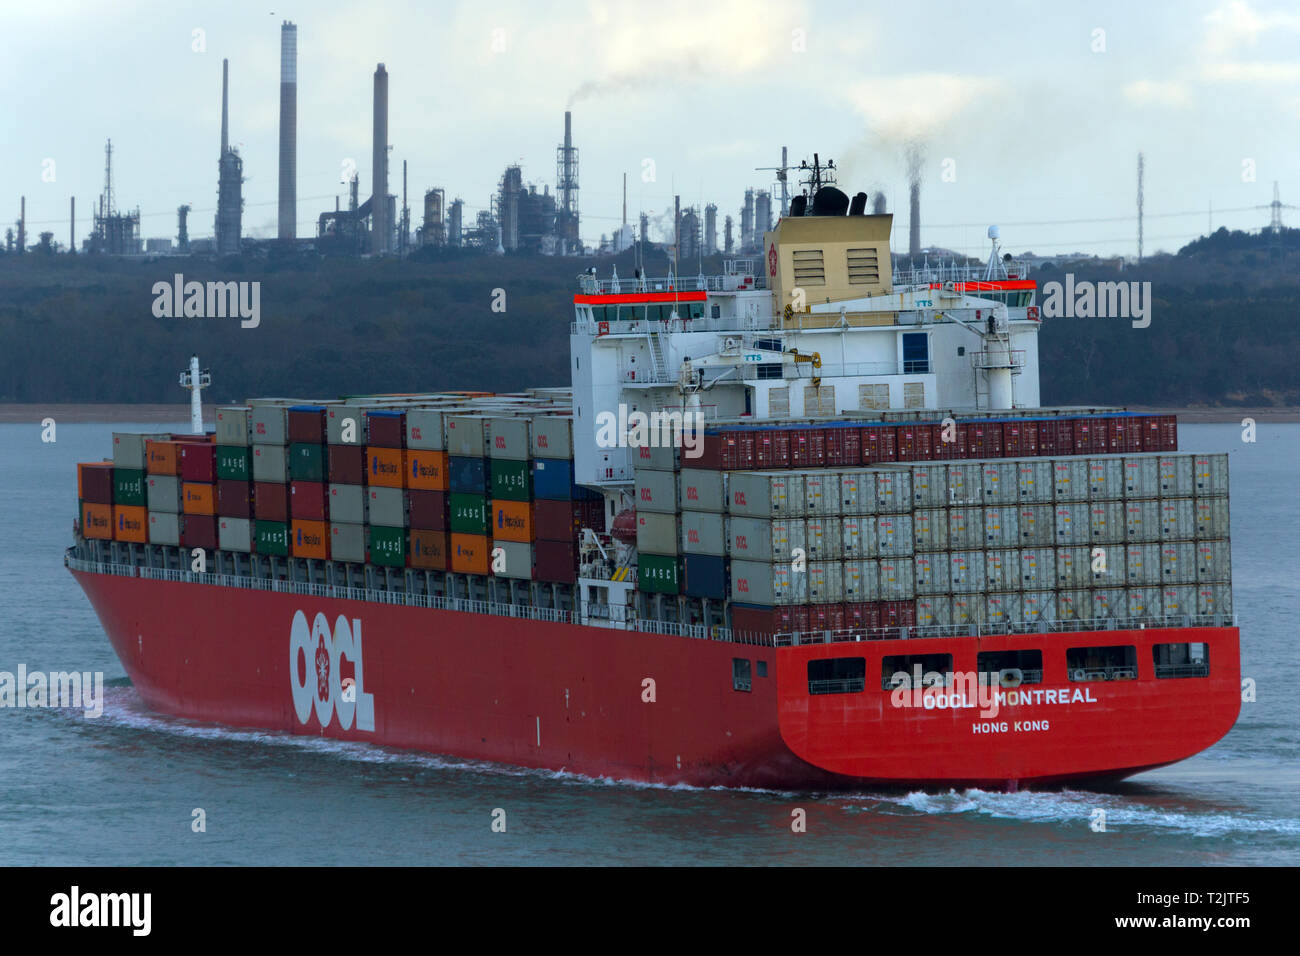 Container Ship,OOCL,Montreal,Fawley,Oil,Refinery,The Solent,Southampton,Port,Terminal,Cowes,isle of Wight,England,UK,box,boat Stock Photo